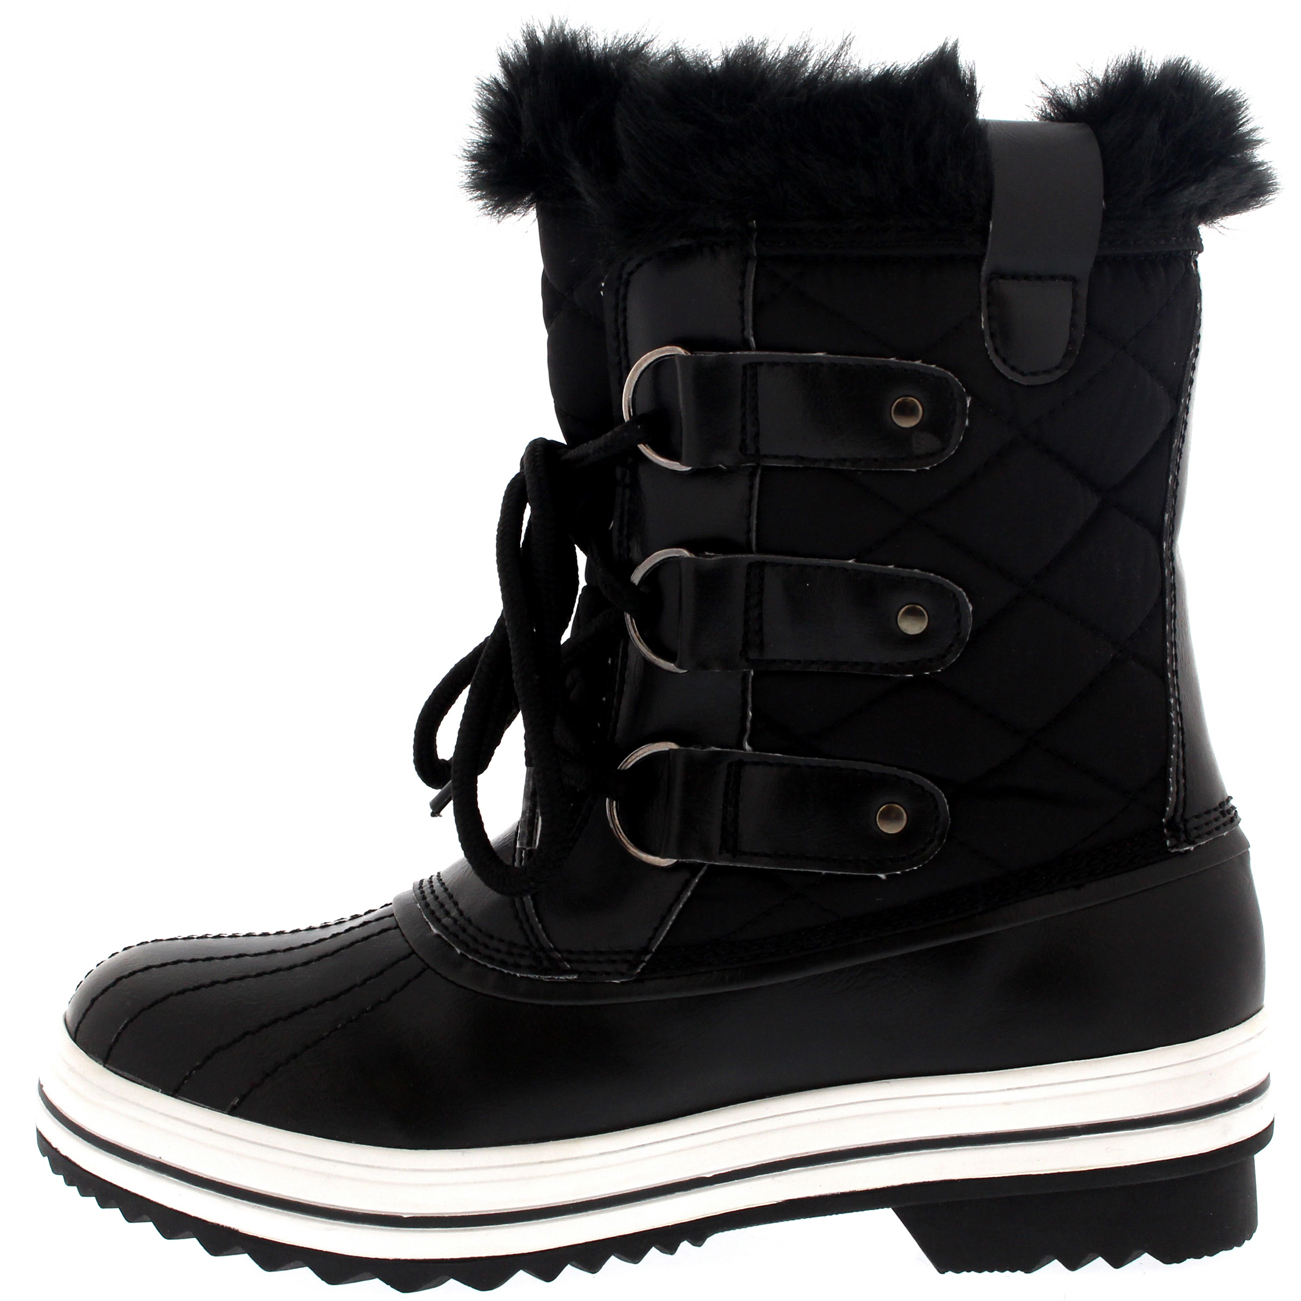 New Womens Snow Boot Nylon Short Winter Snow Fur Rain Warm